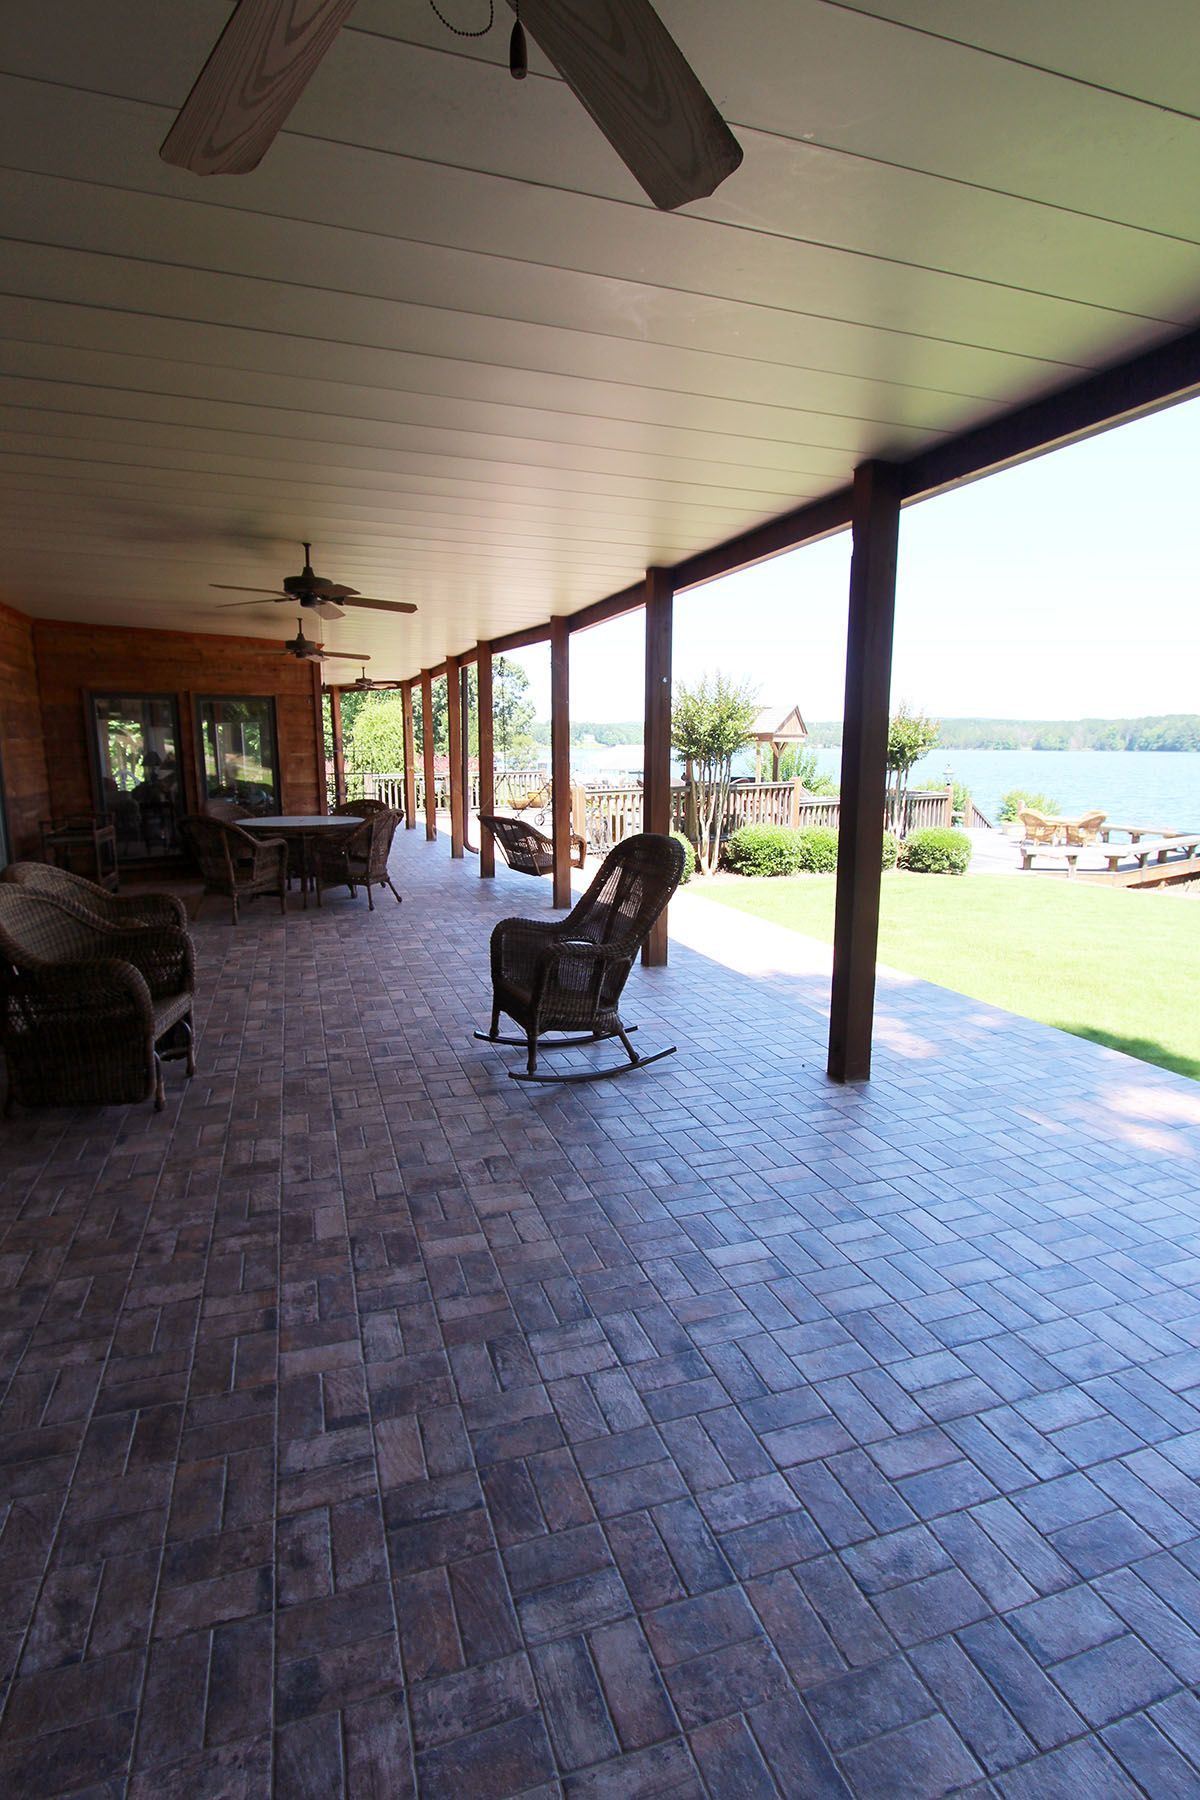 Outdoor Living Area Paved With Chicago Brick Tile